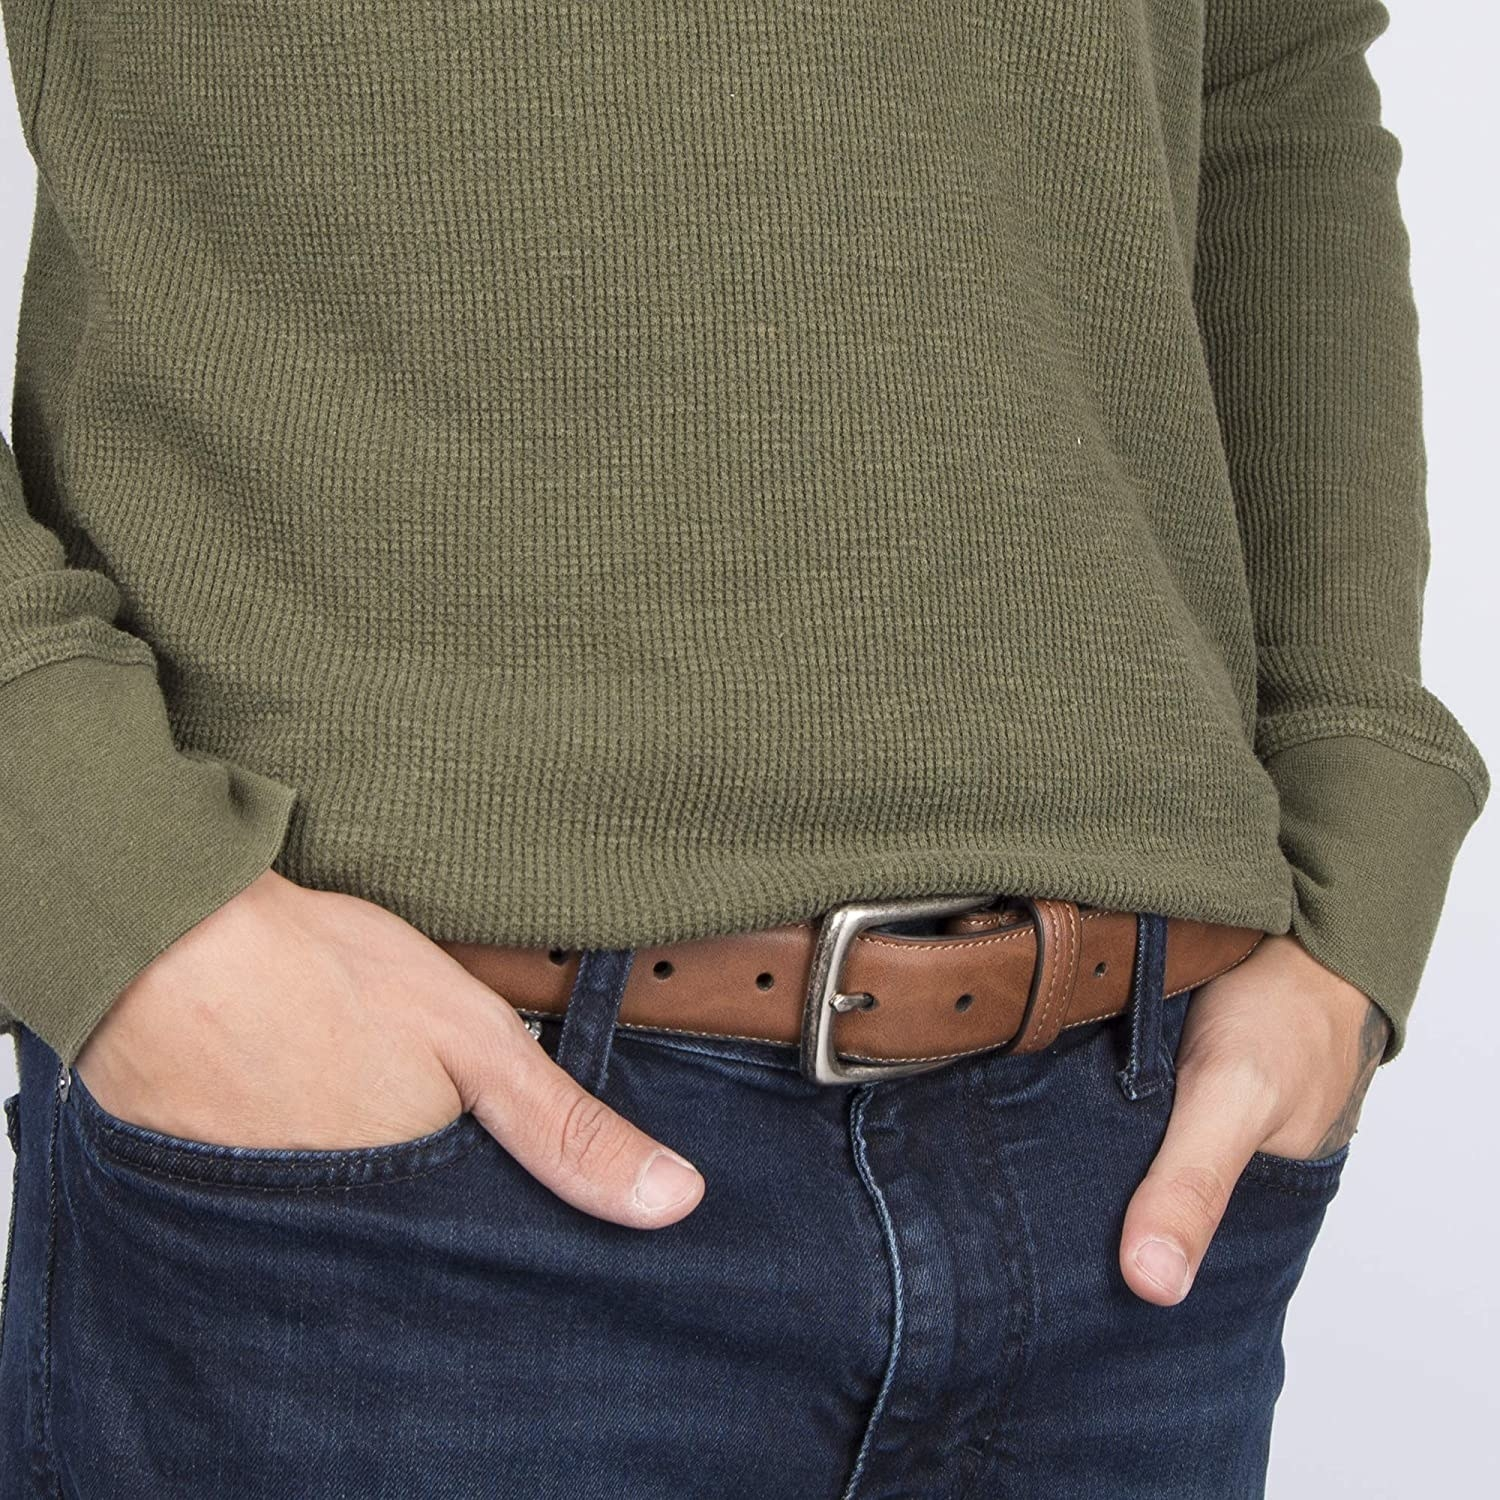 A person wearing the belt with their hands in their pockets